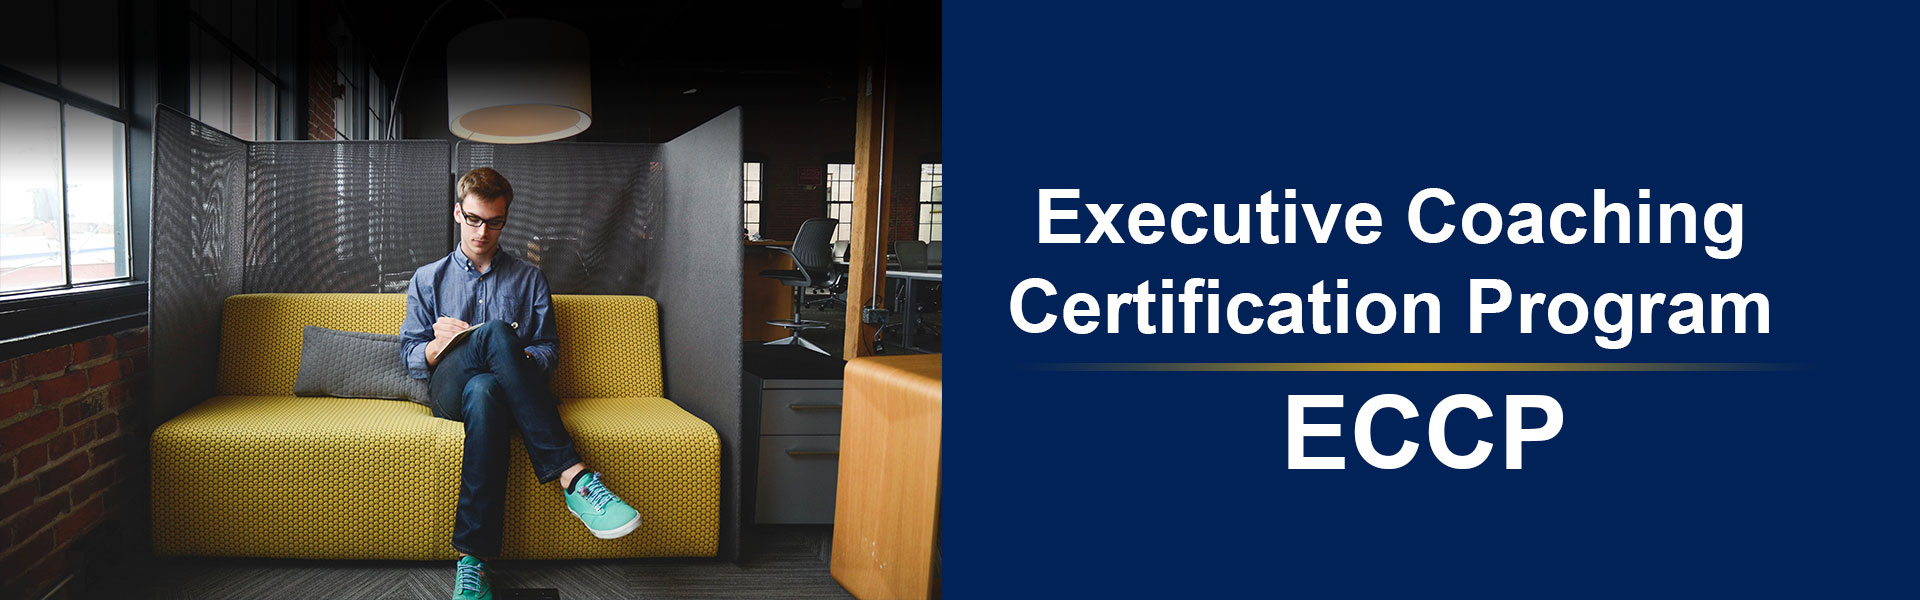 Executive Coaching Certification Program